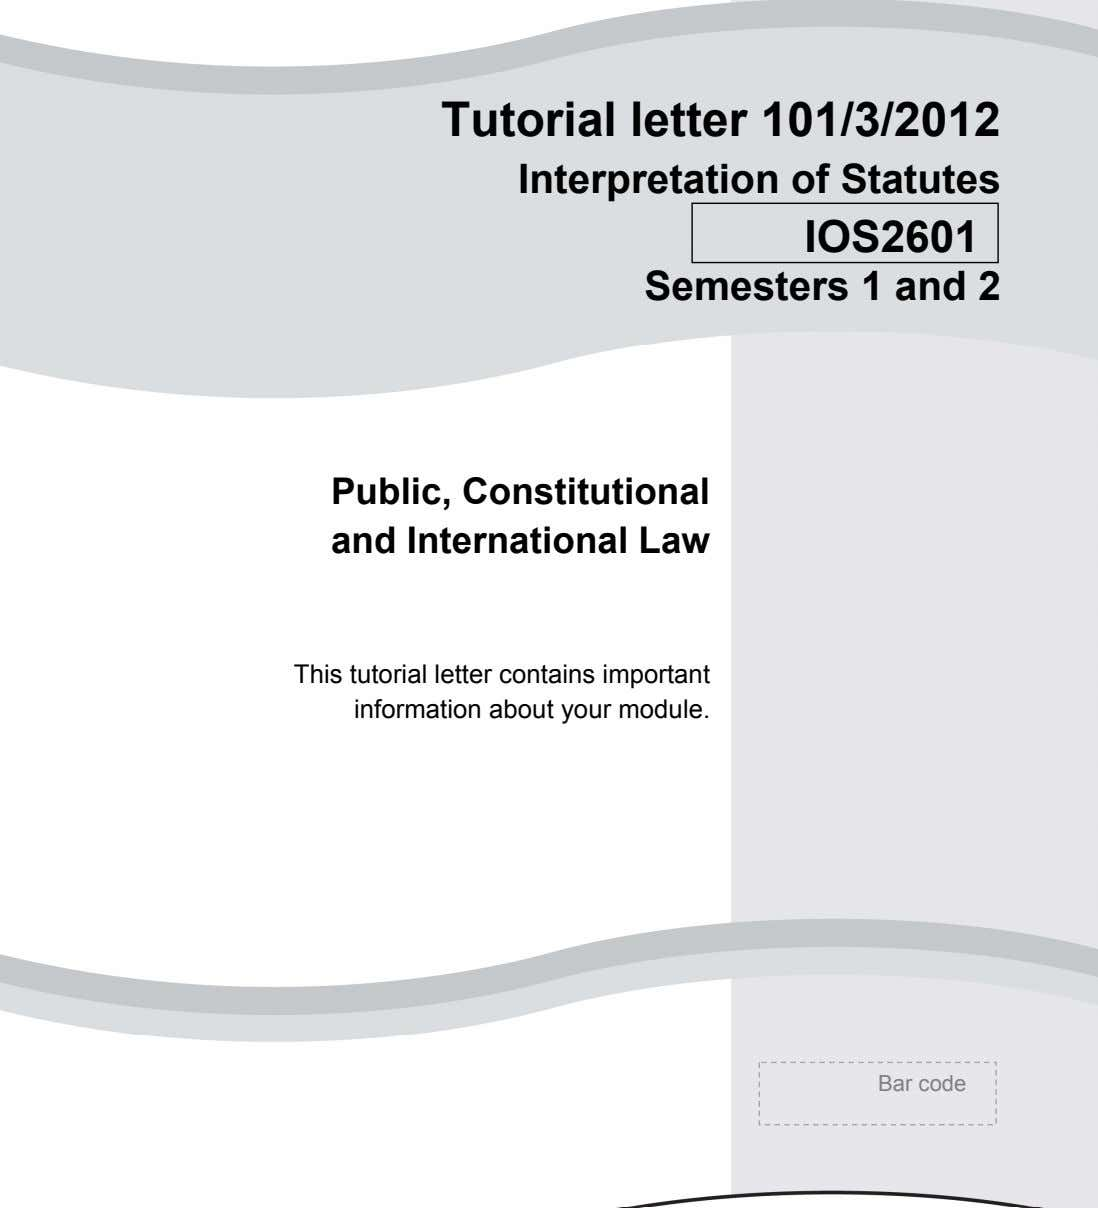 Tutorial letter 101/3/2012 Interpretation of Statutes IOS2601 Semesters 1 and 2 Public, Constitutional and